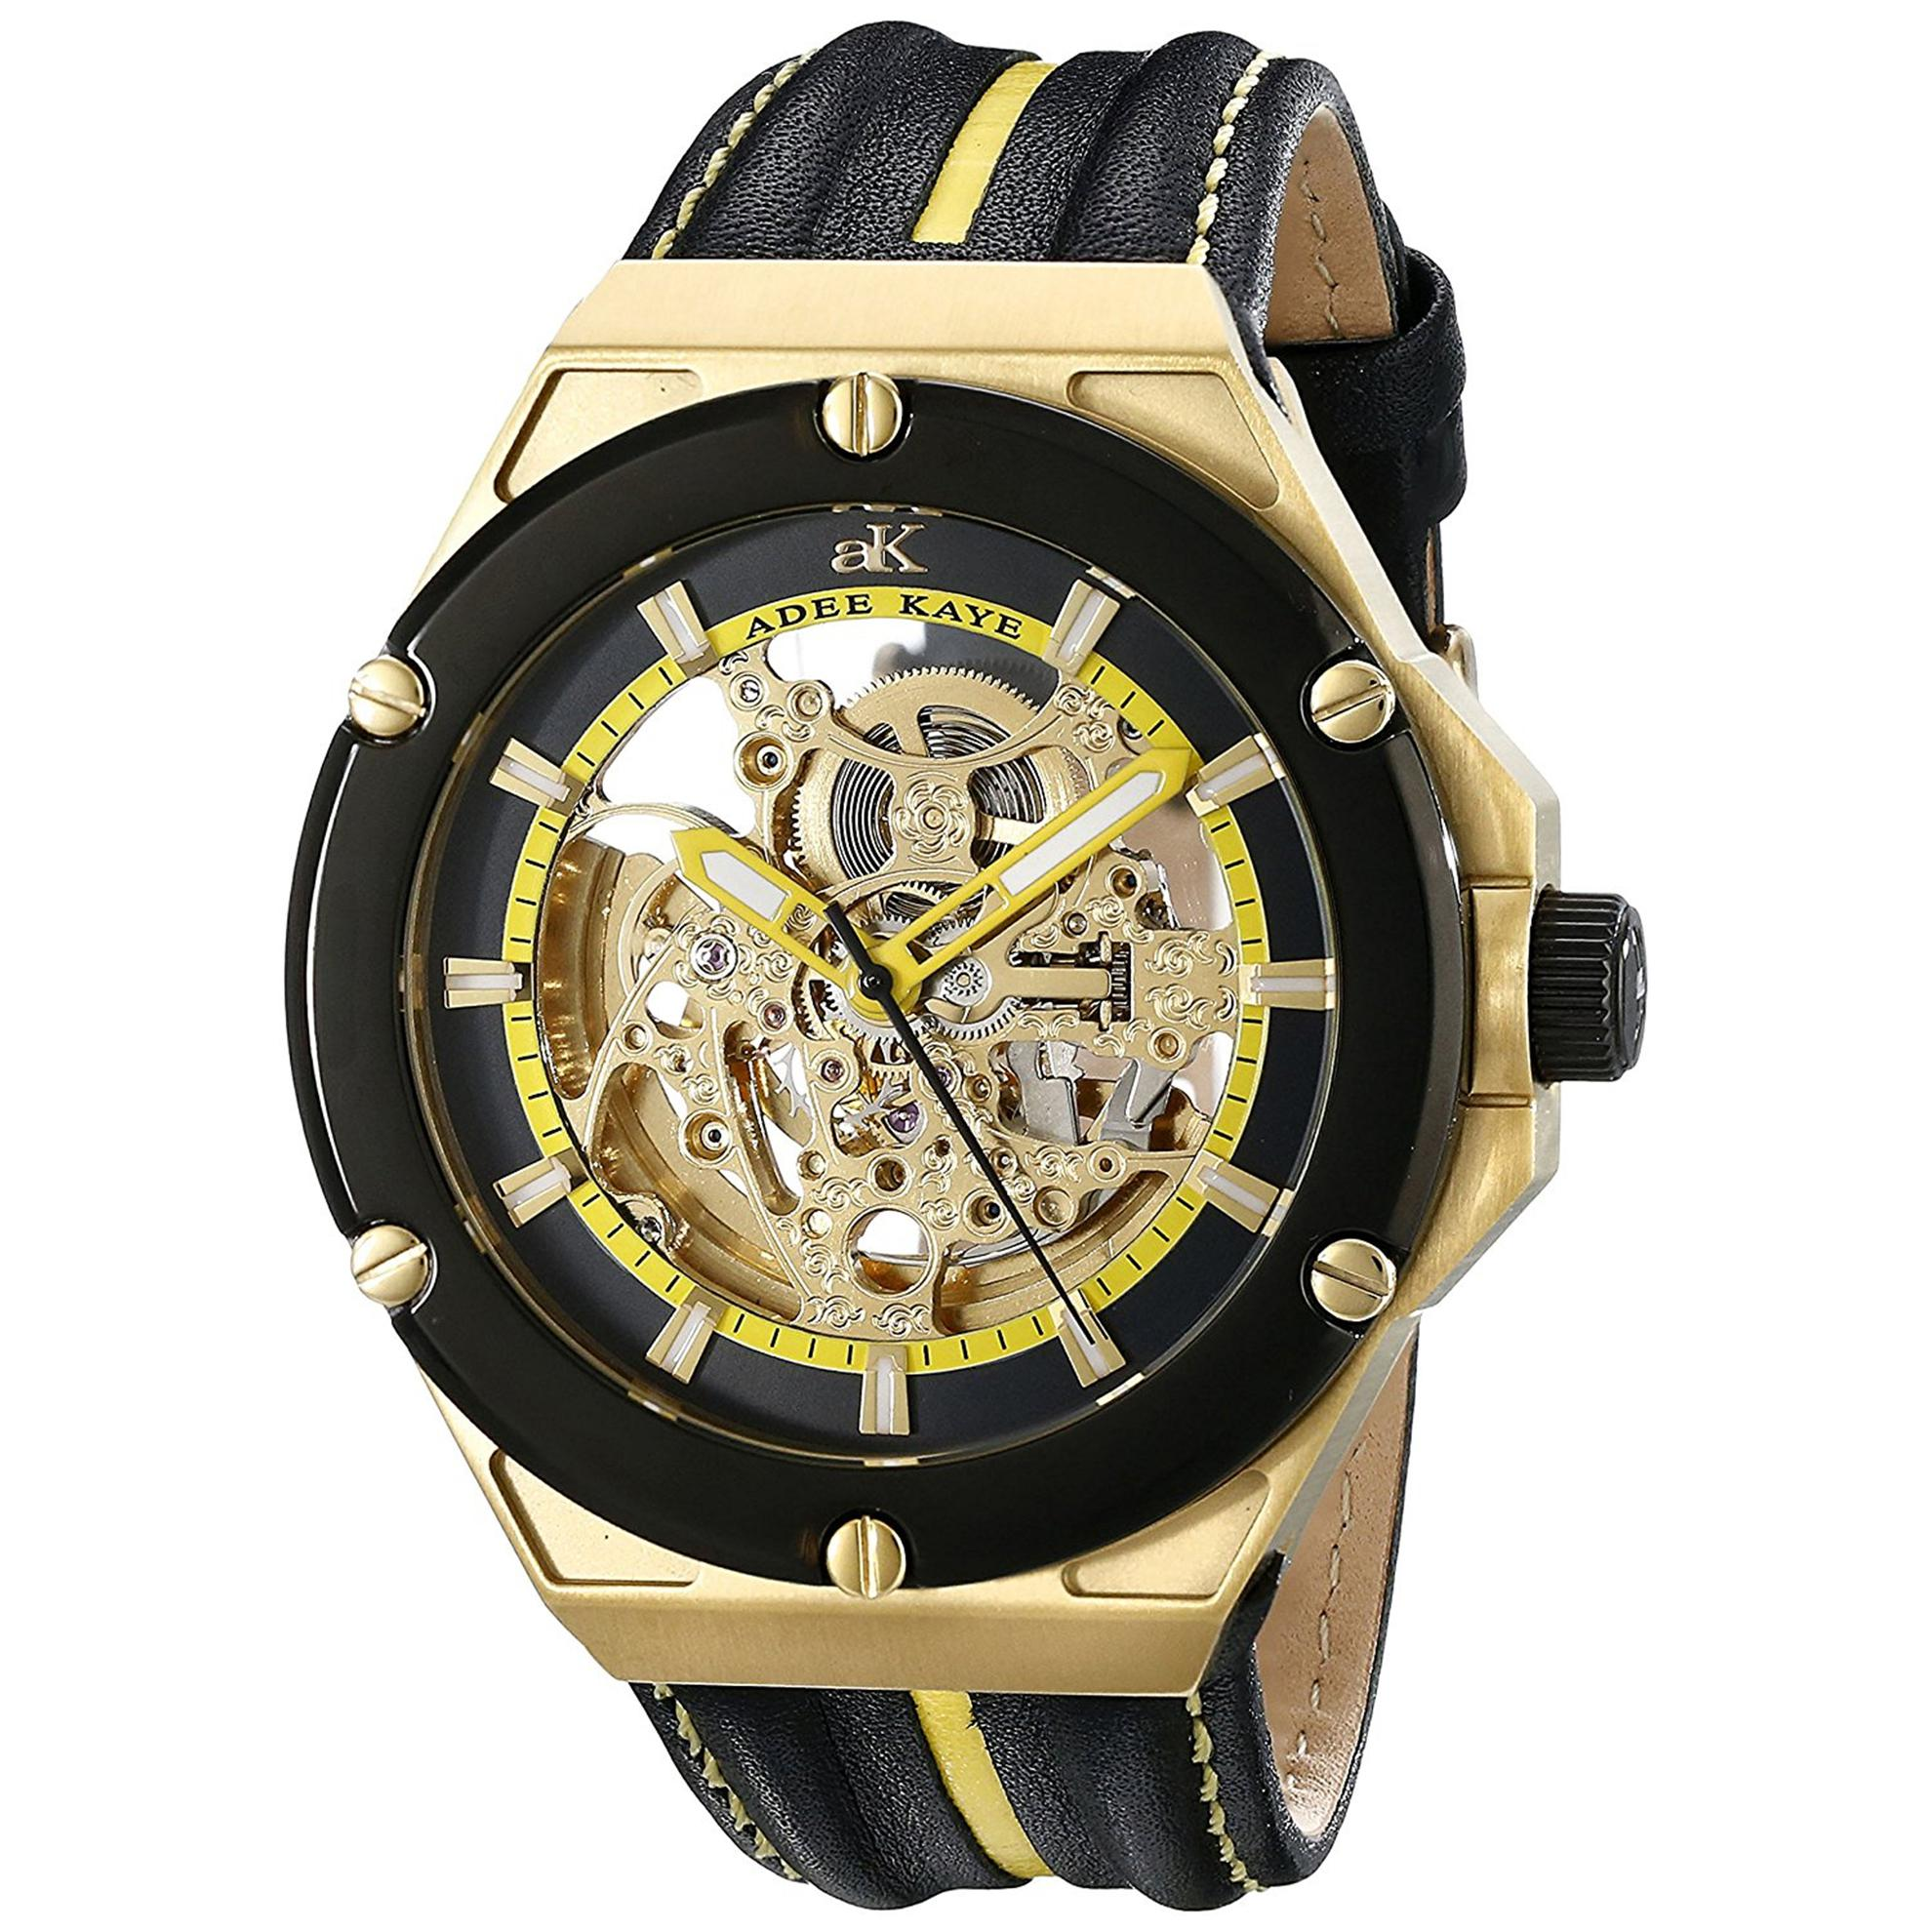 Adee Kaye AK2240-MG-YW Adee Kaye Skeleton Automatic Gold Tone Black Yellow Dial Black Leather Strap